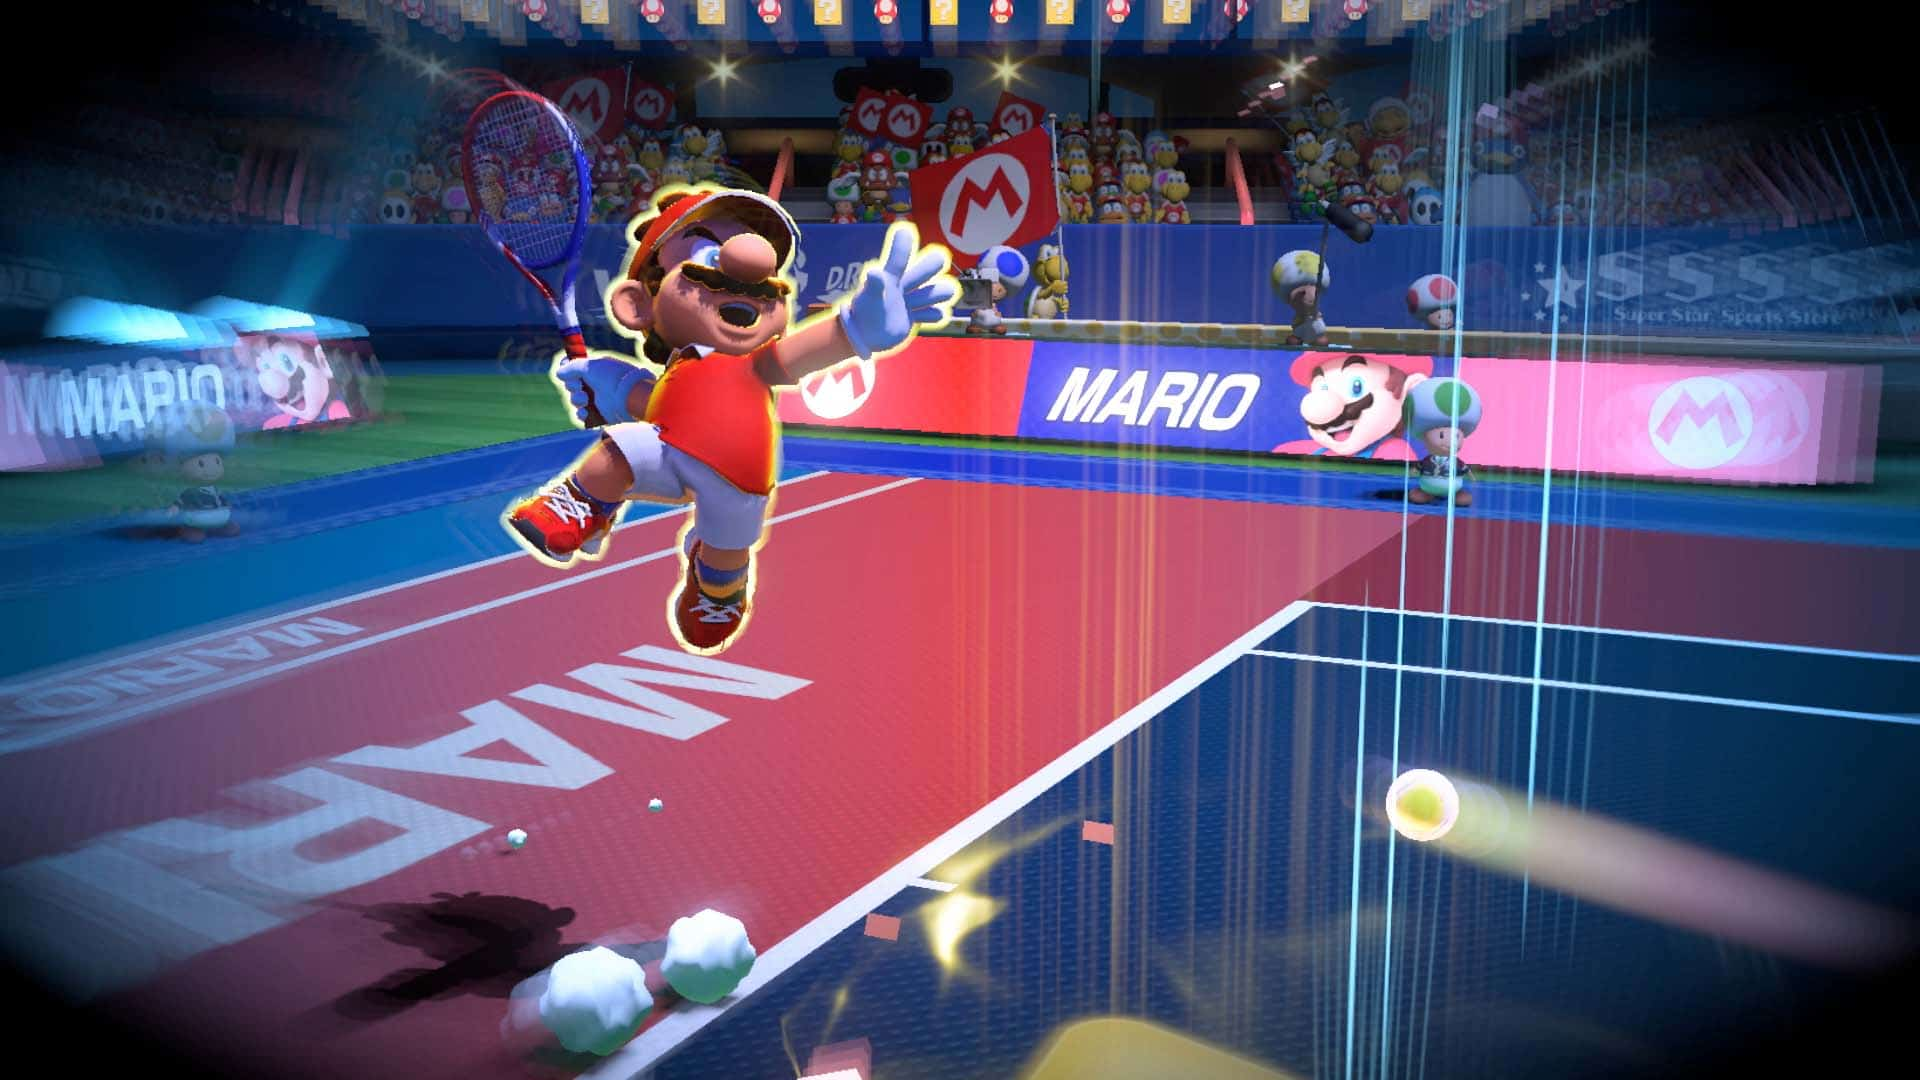 New Mario Tennis Aces Story Mode footage